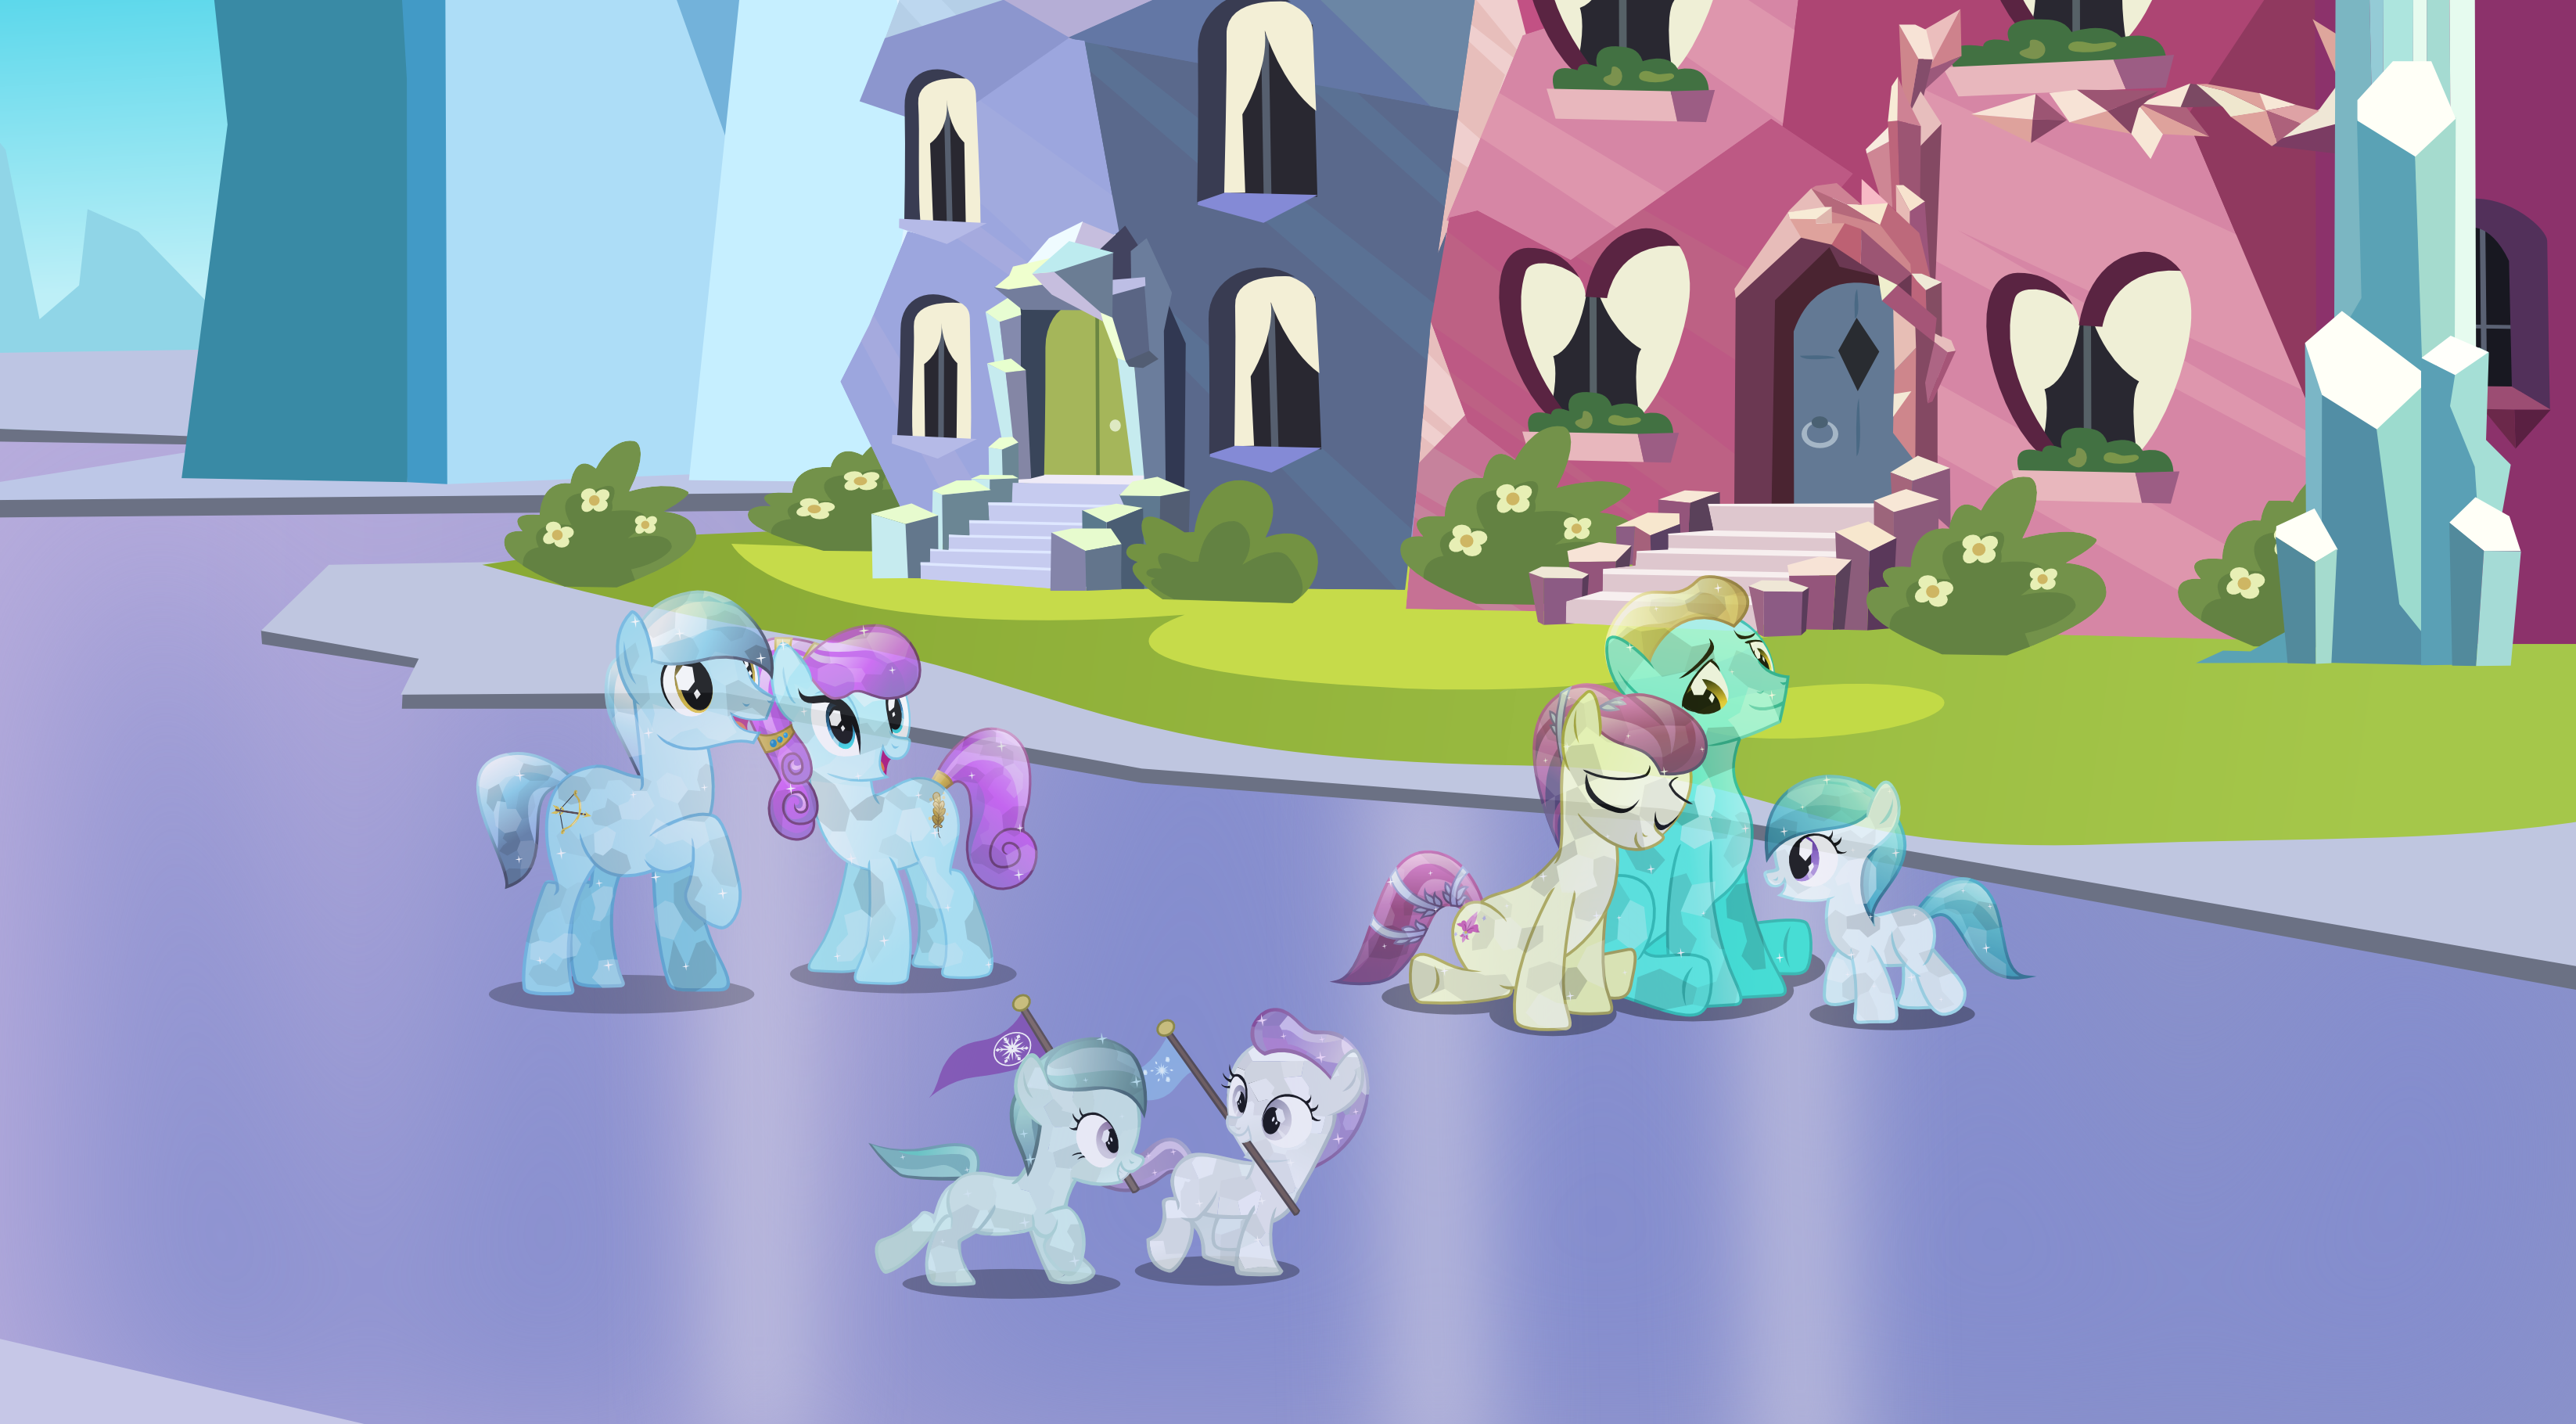 The Crystal empire by Vector.